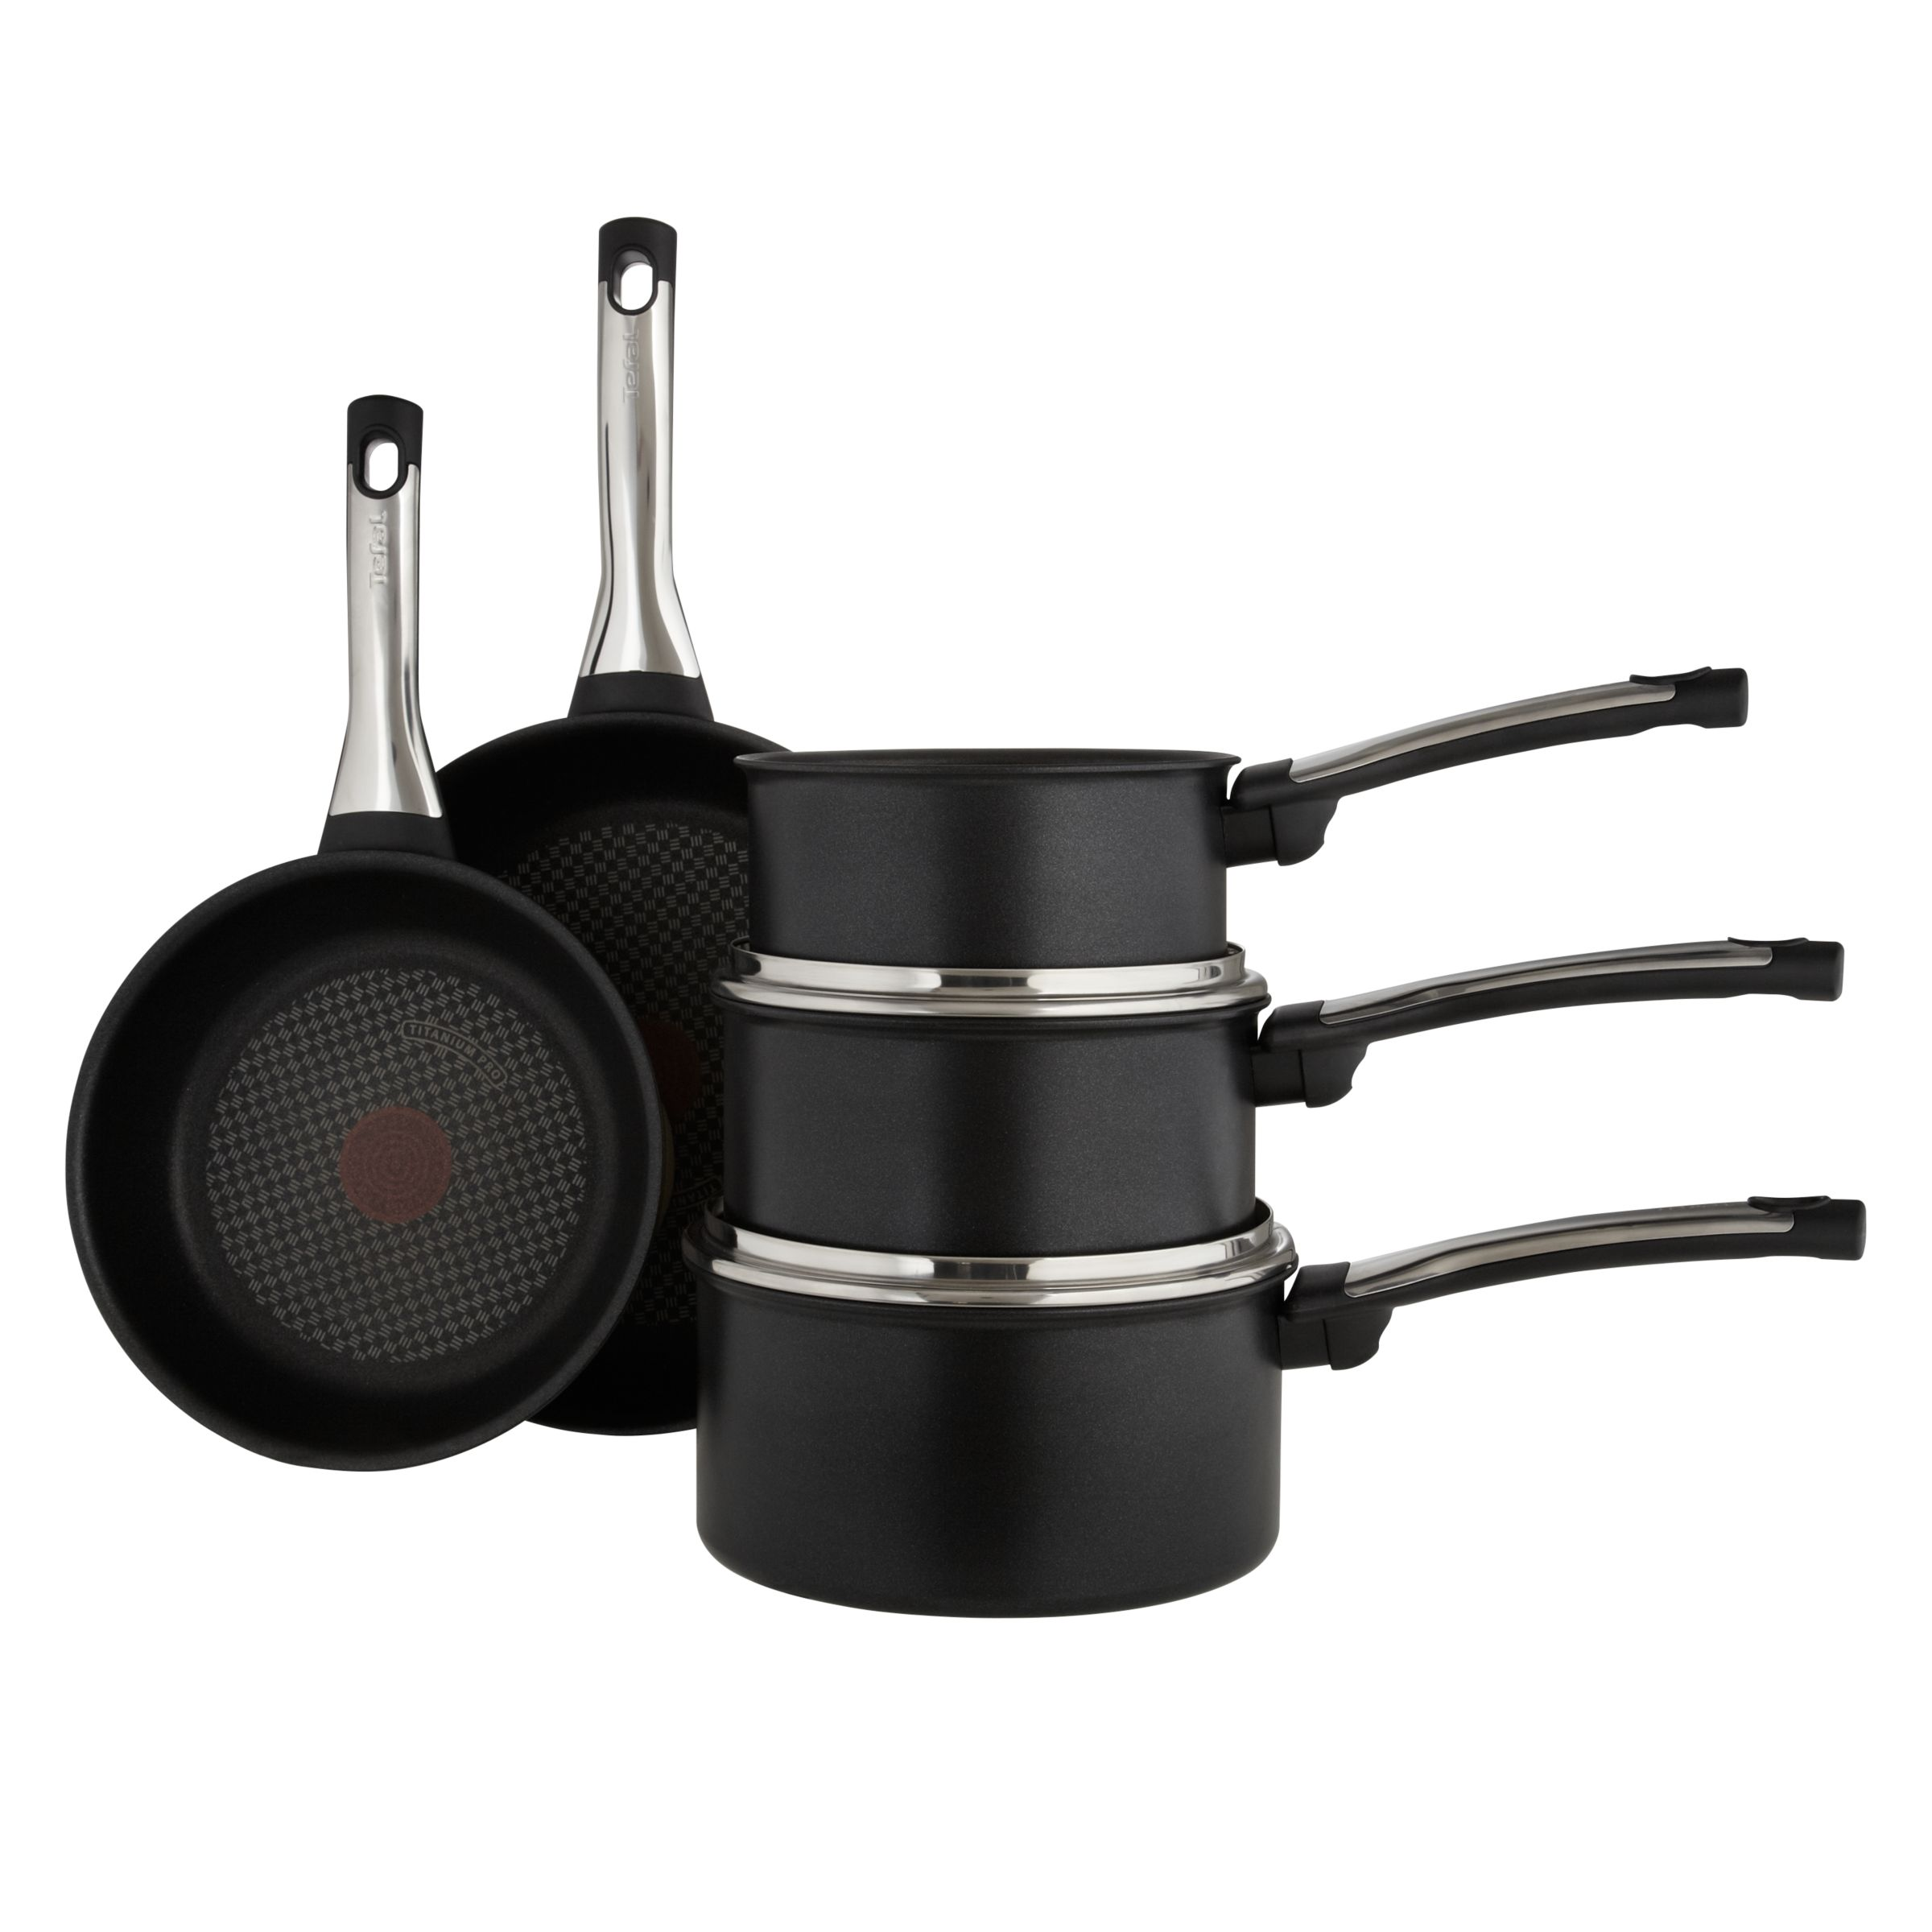 Tefal preference shop for cheap cookware utensils and save online - Tefal raclette grill john lewis ...